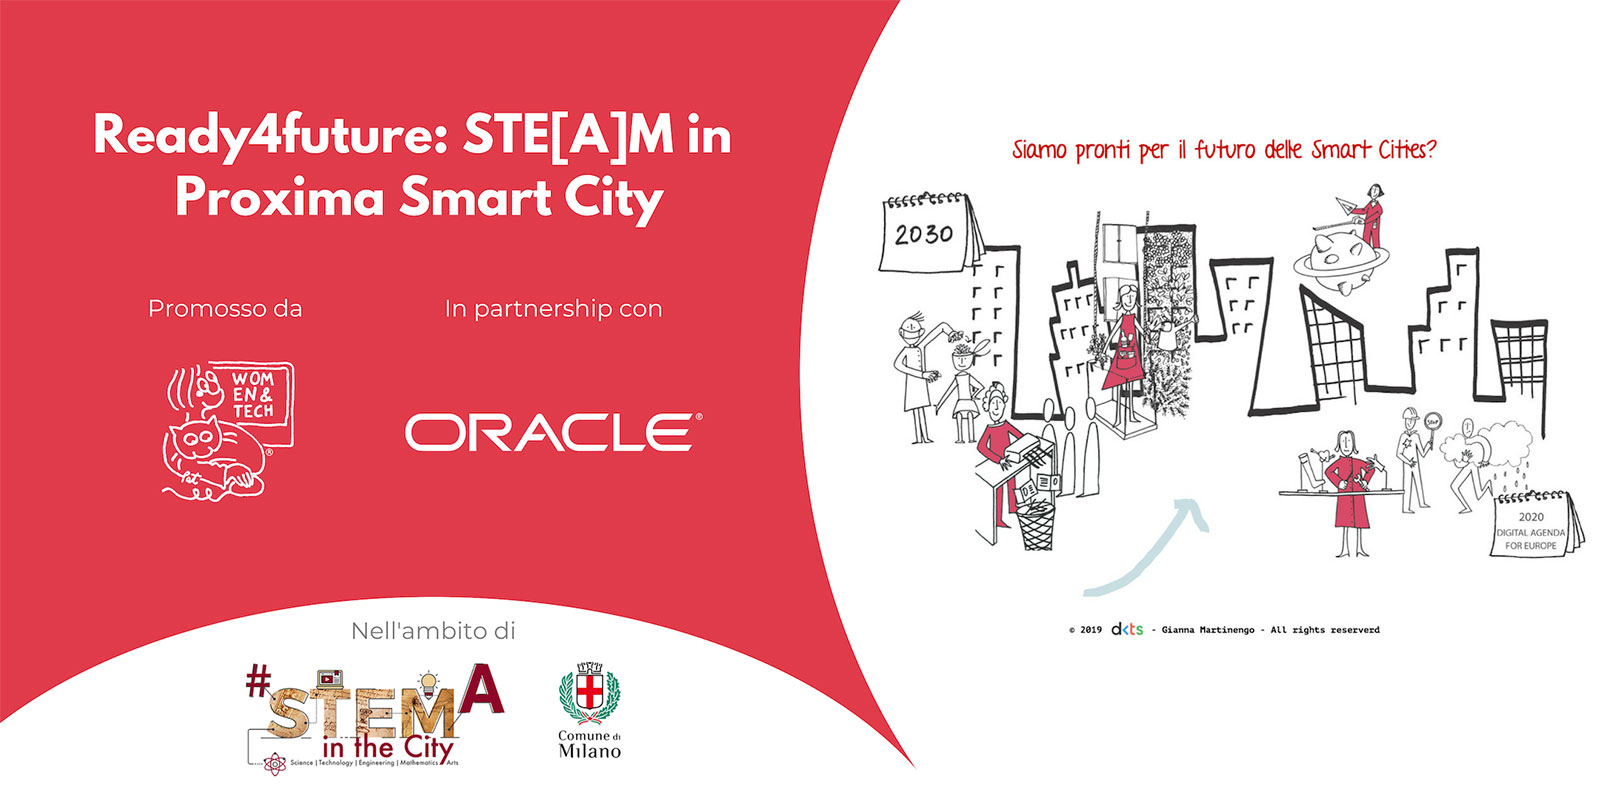 Ready4future: STE[A]M in Proxima Smart City